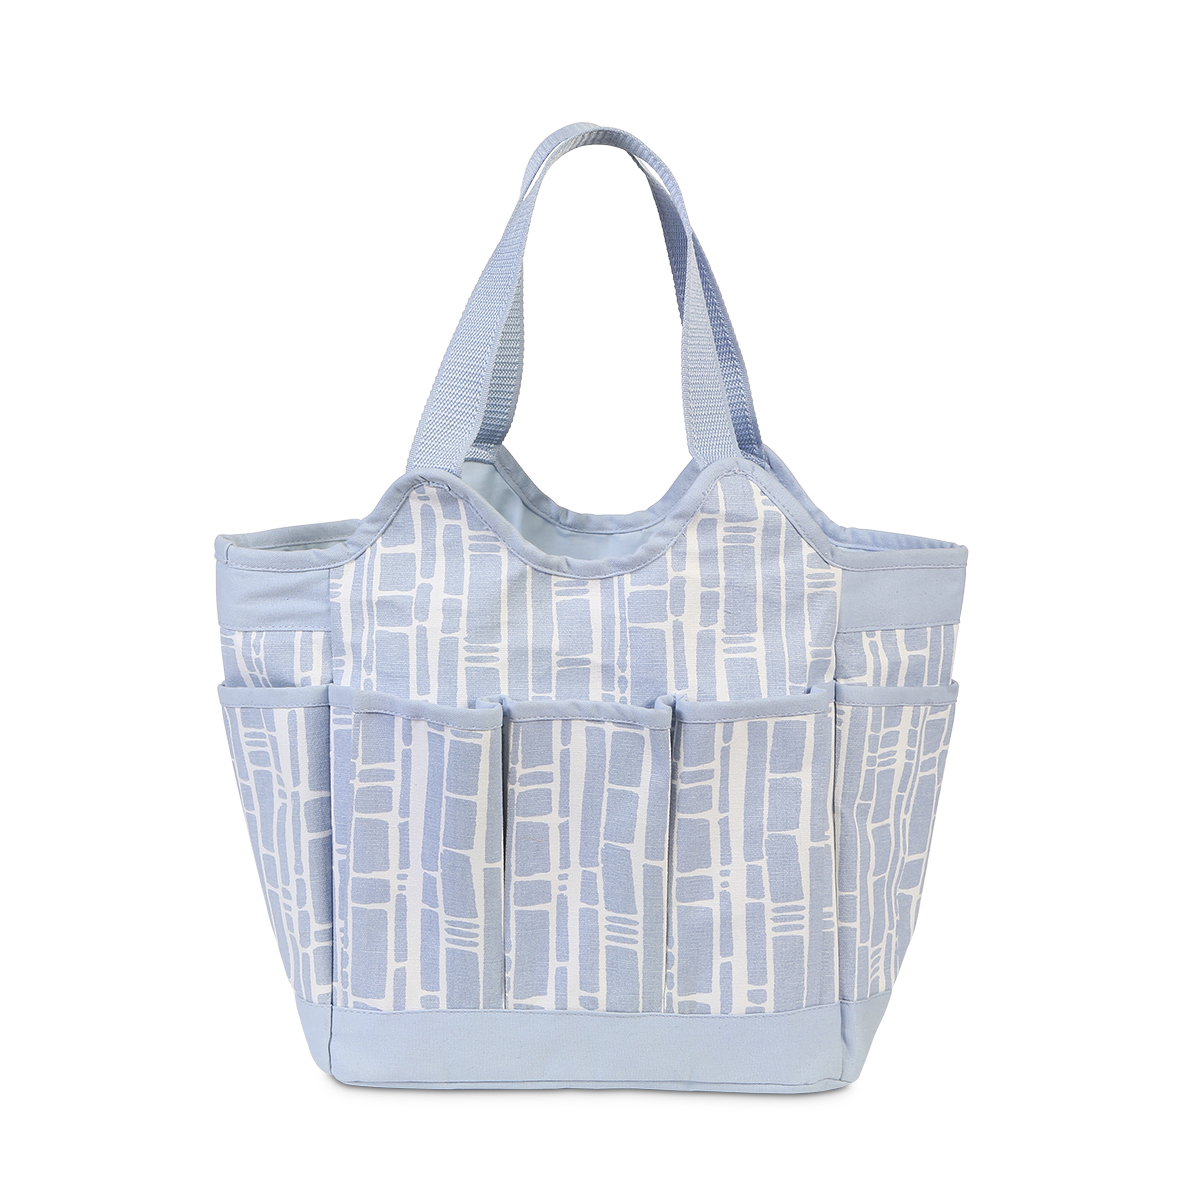 diaper bag in blue bamboo with lots of pockets for your baby things. Black Bedroom Furniture Sets. Home Design Ideas